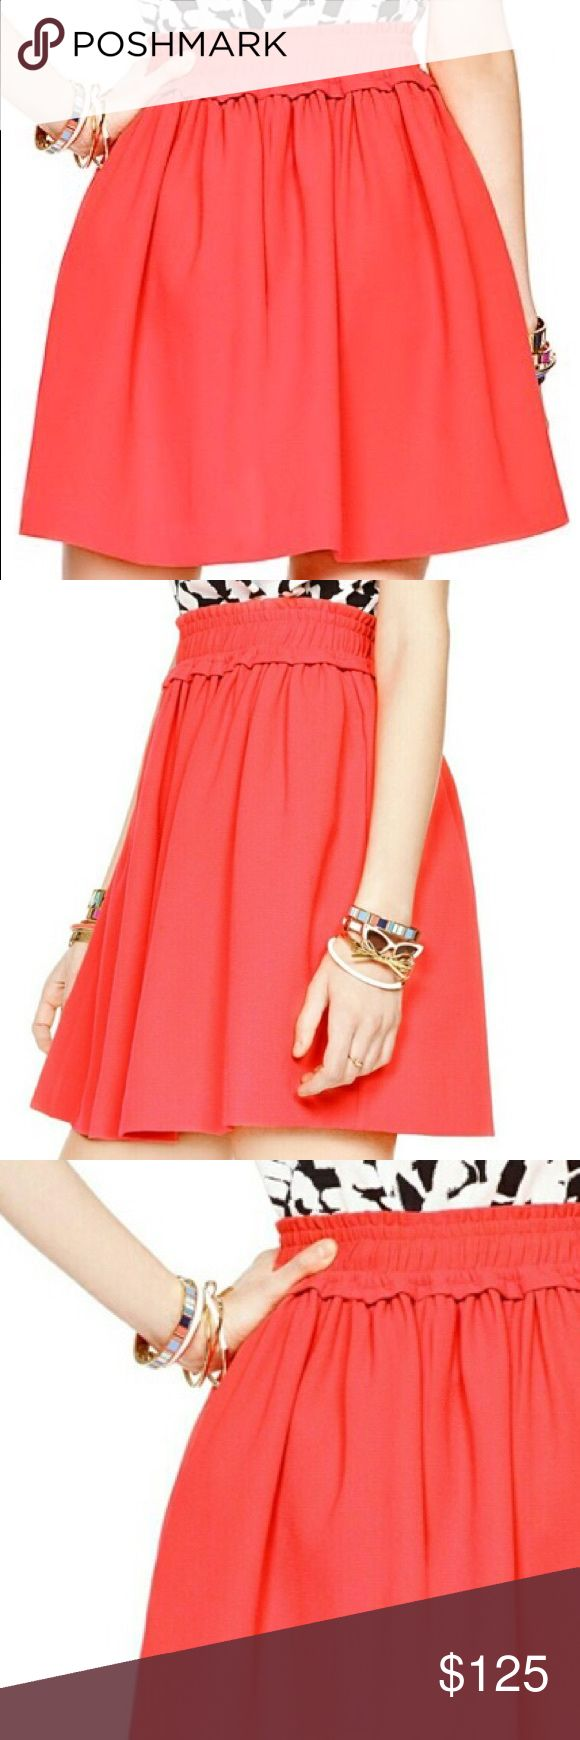 kate spade ♠️ cute bright gathered full skirt brand new with tag kate spade ♠️ New York super cute crepe gathered full skirt in geranium color (bright coral/pink).  Very girly style, with wide elastic waist and slit pocket on each side. Perfect for the holiday party or going out ♠️😍 kate spade Skirts A-Line or Full